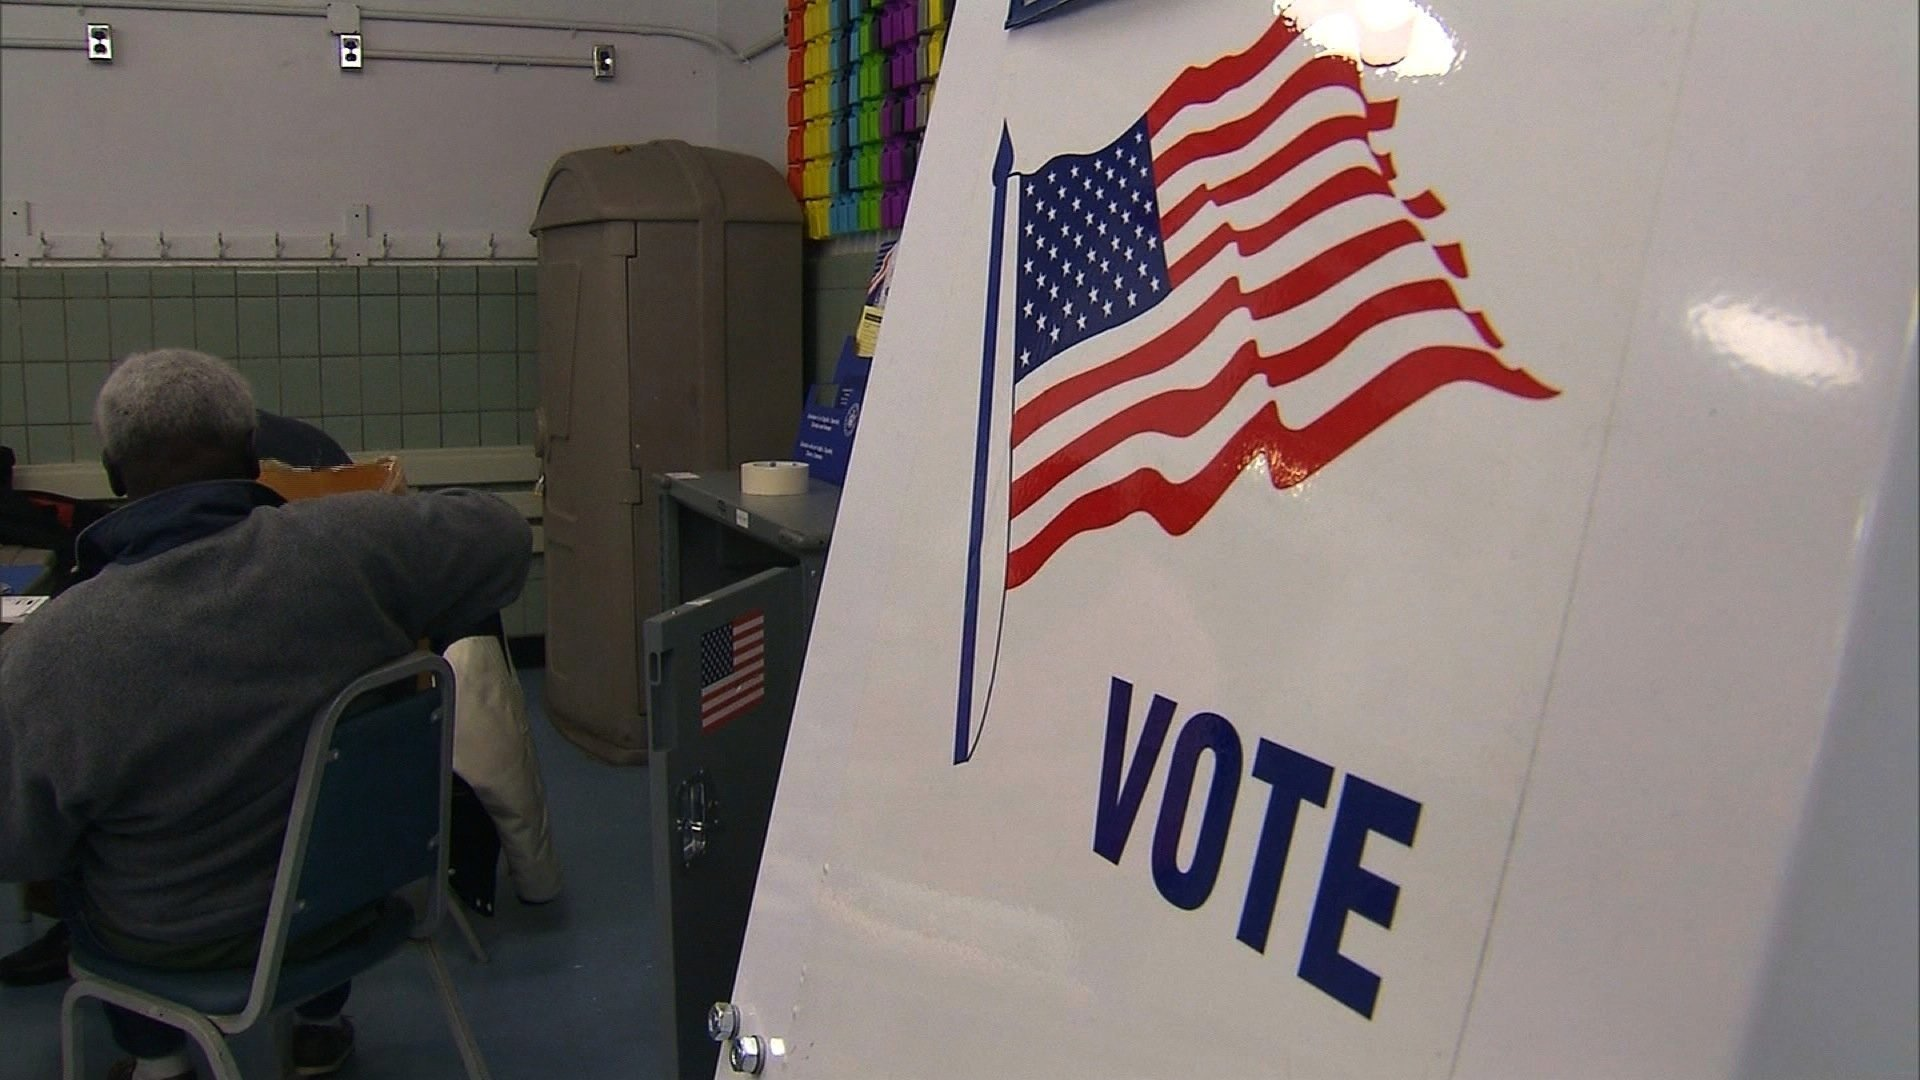 AR judge shuts down voter ID law as unconstitutional